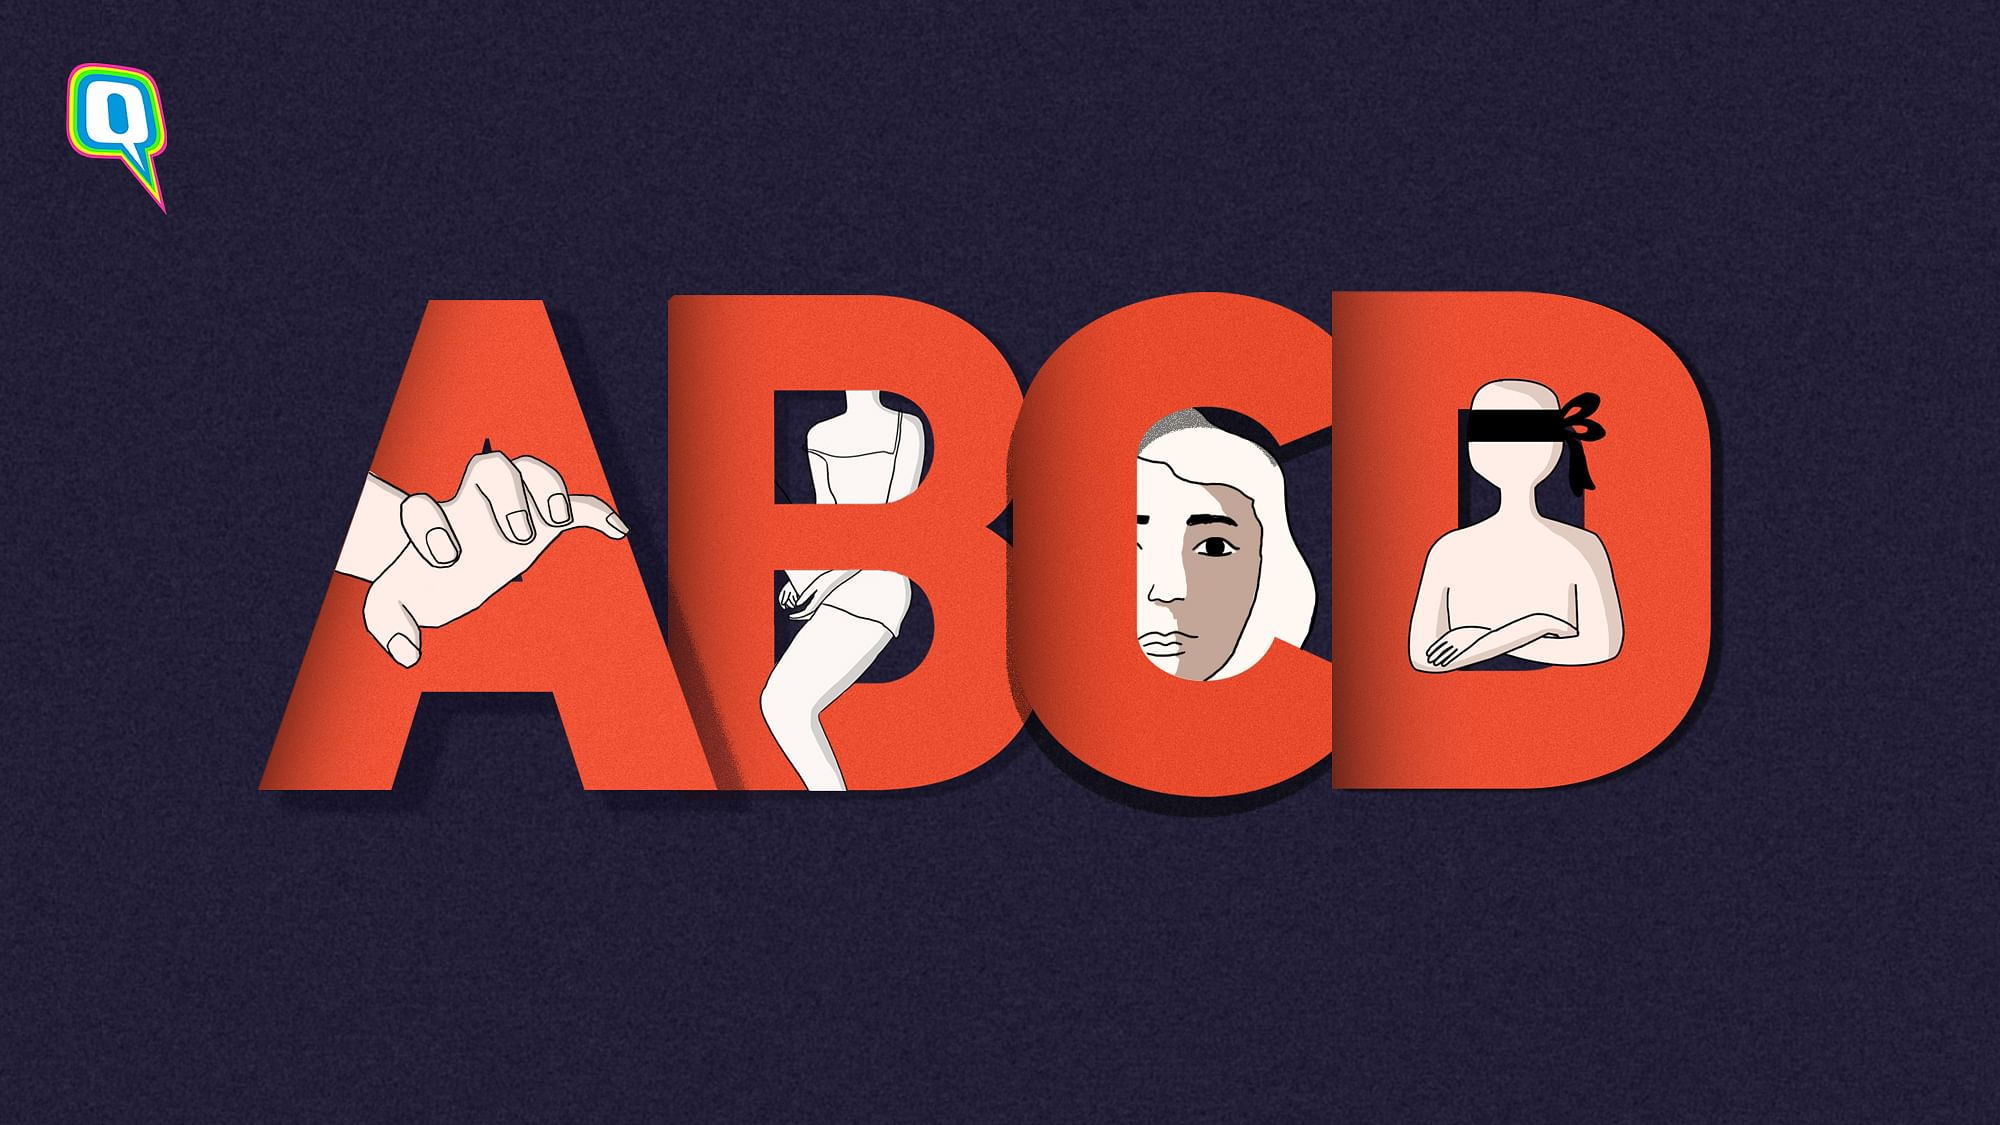 The ABCs of Sexual Abuse